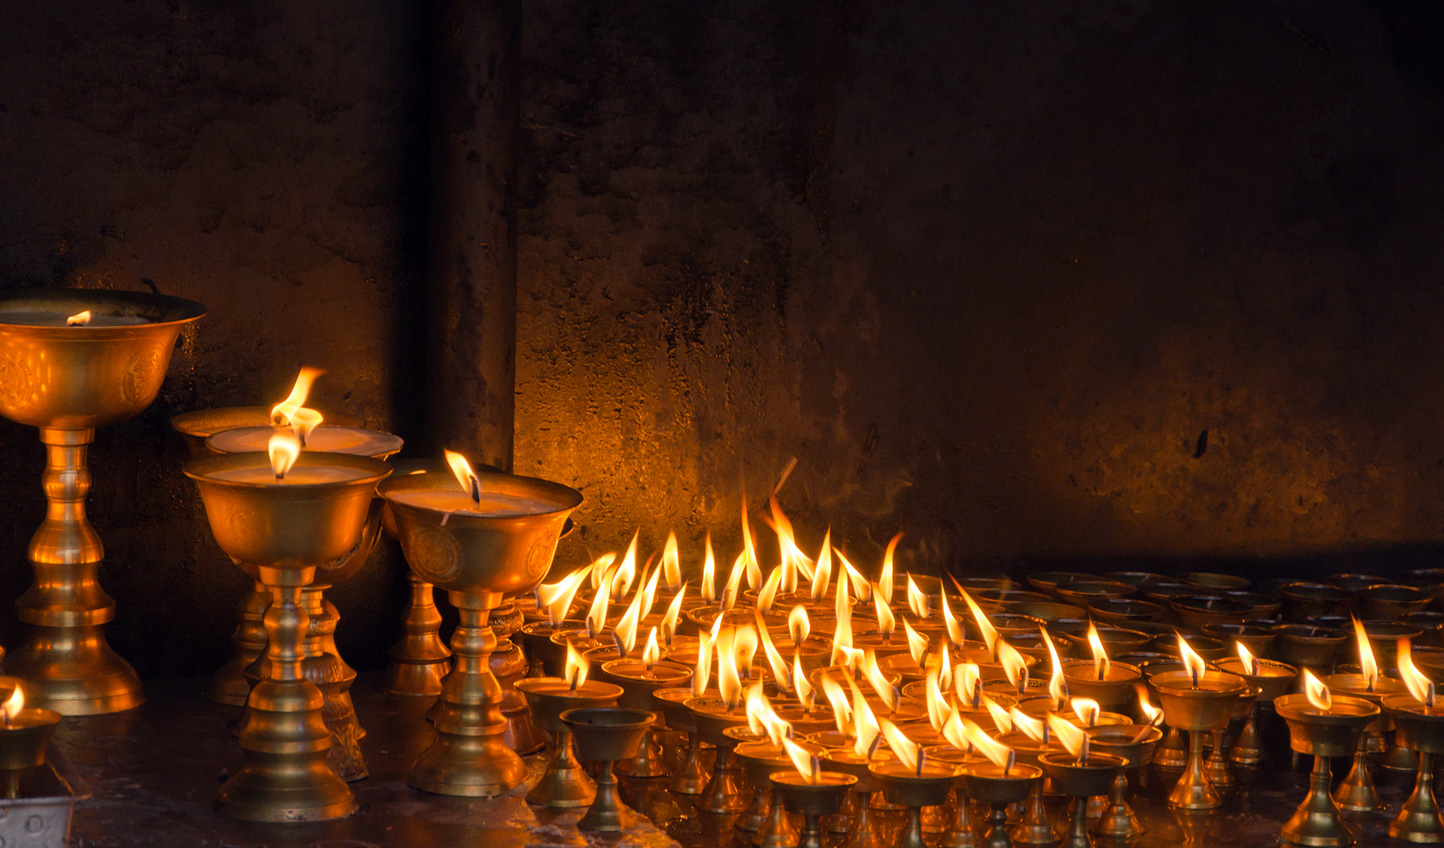 Step into temples lit only by candlelight